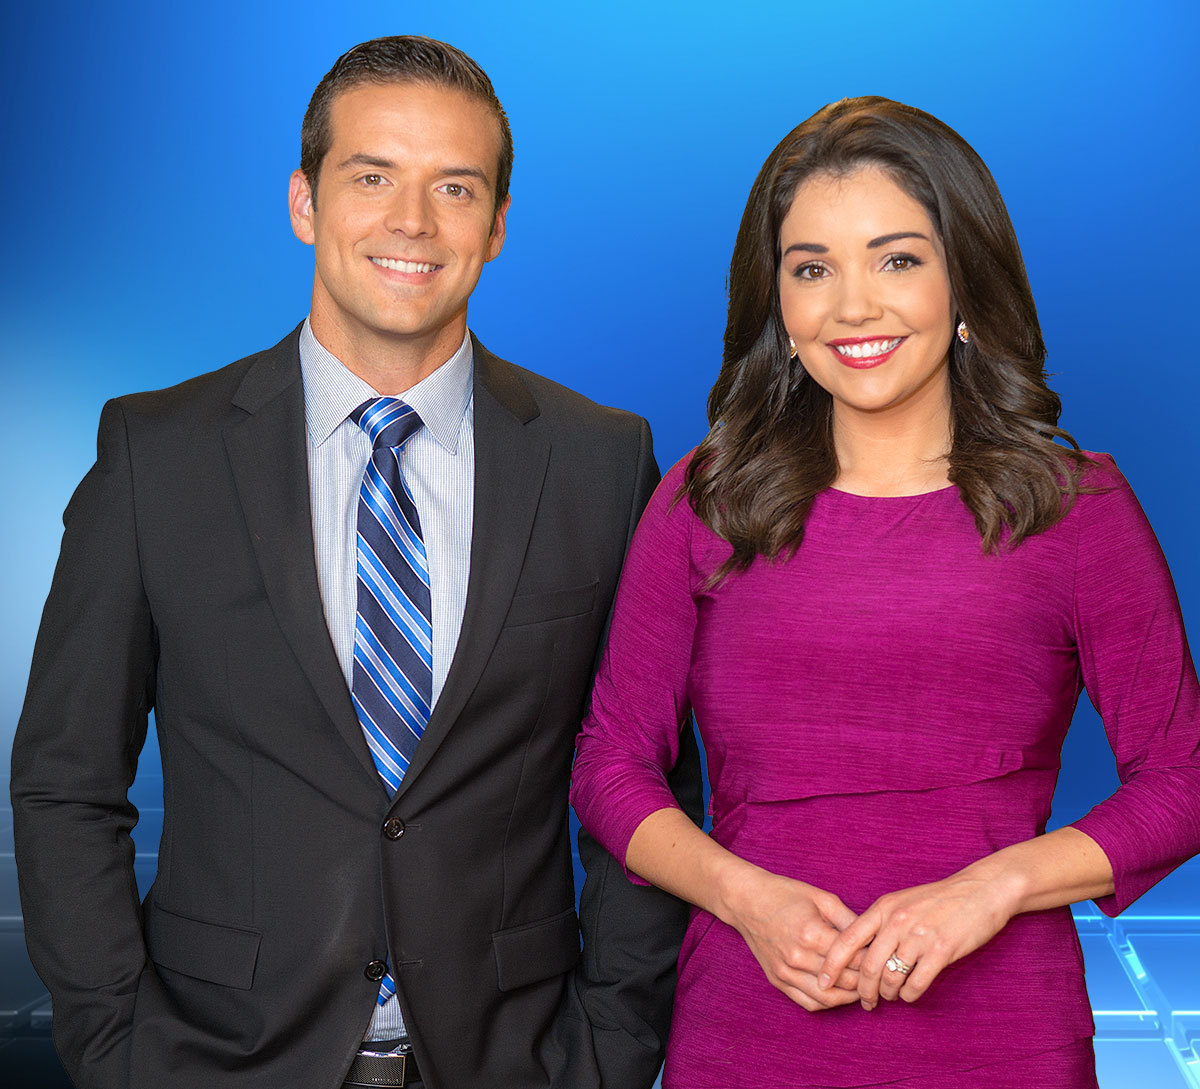 Pictures: The anchors of Orlando's WKMG Local 6 - Orlando